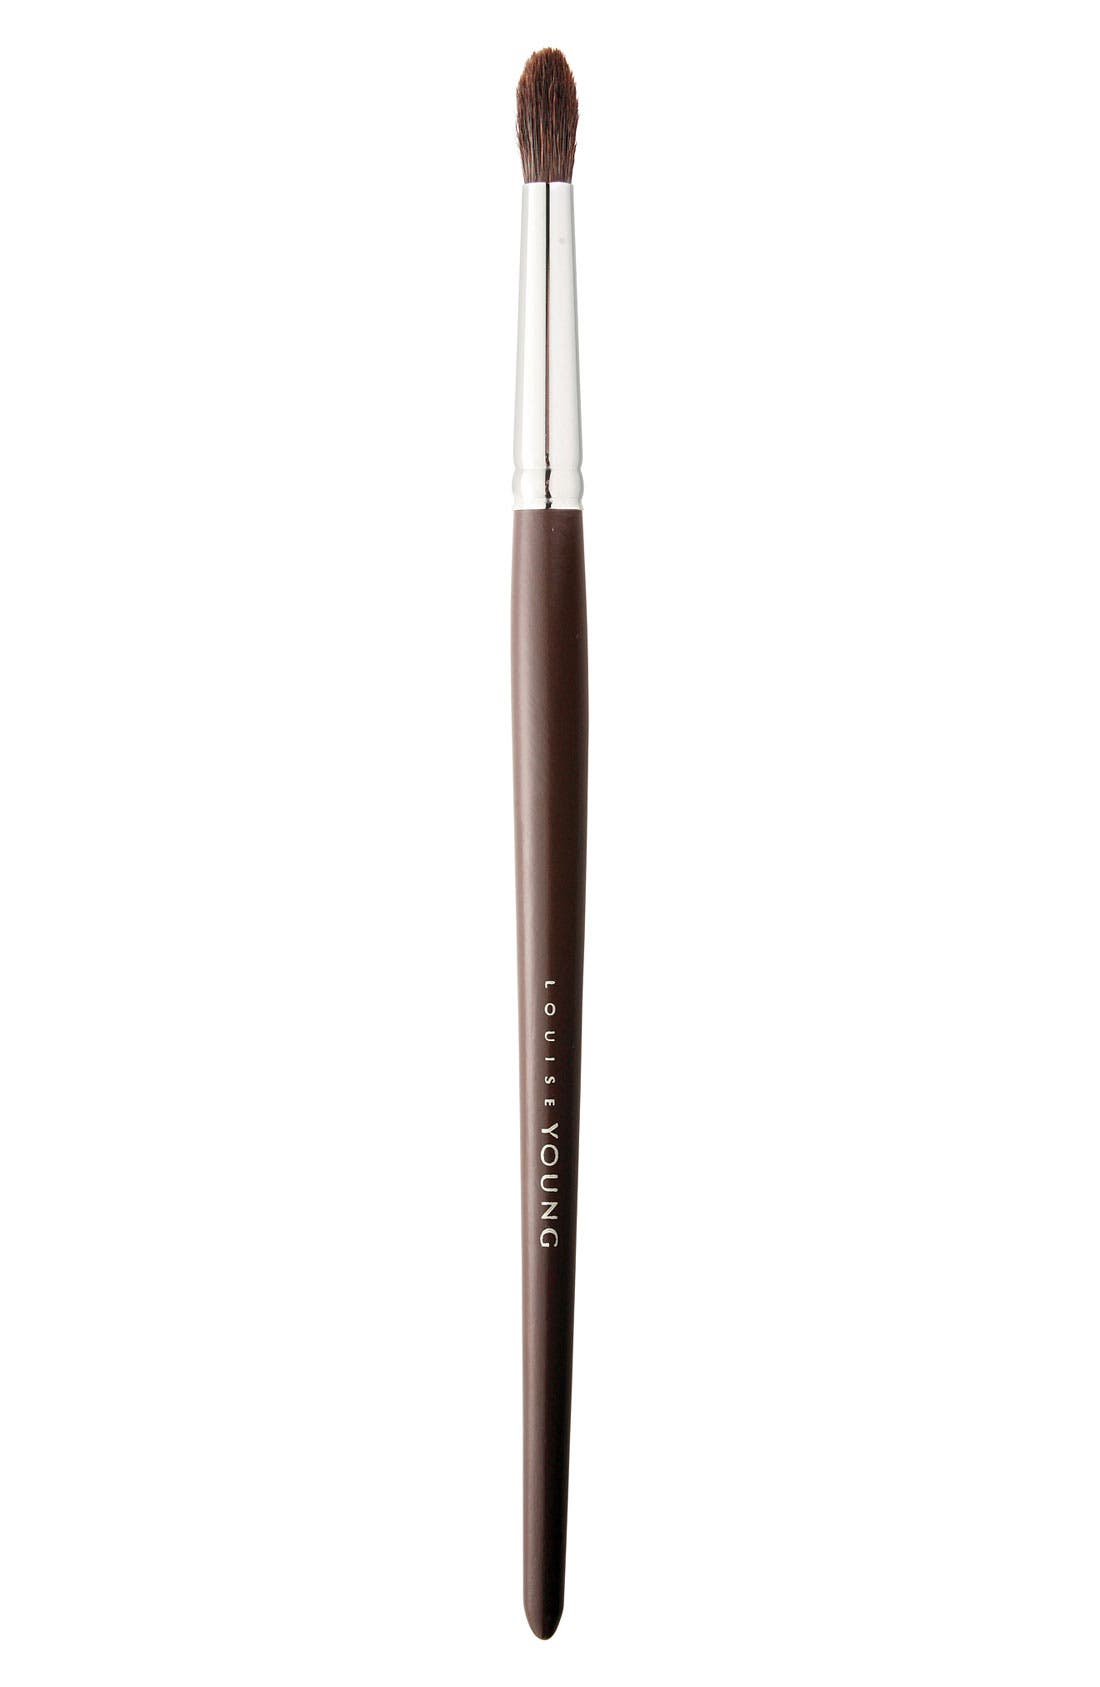 LY38 Tapered Shadow Brush,                         Main,                         color, 000